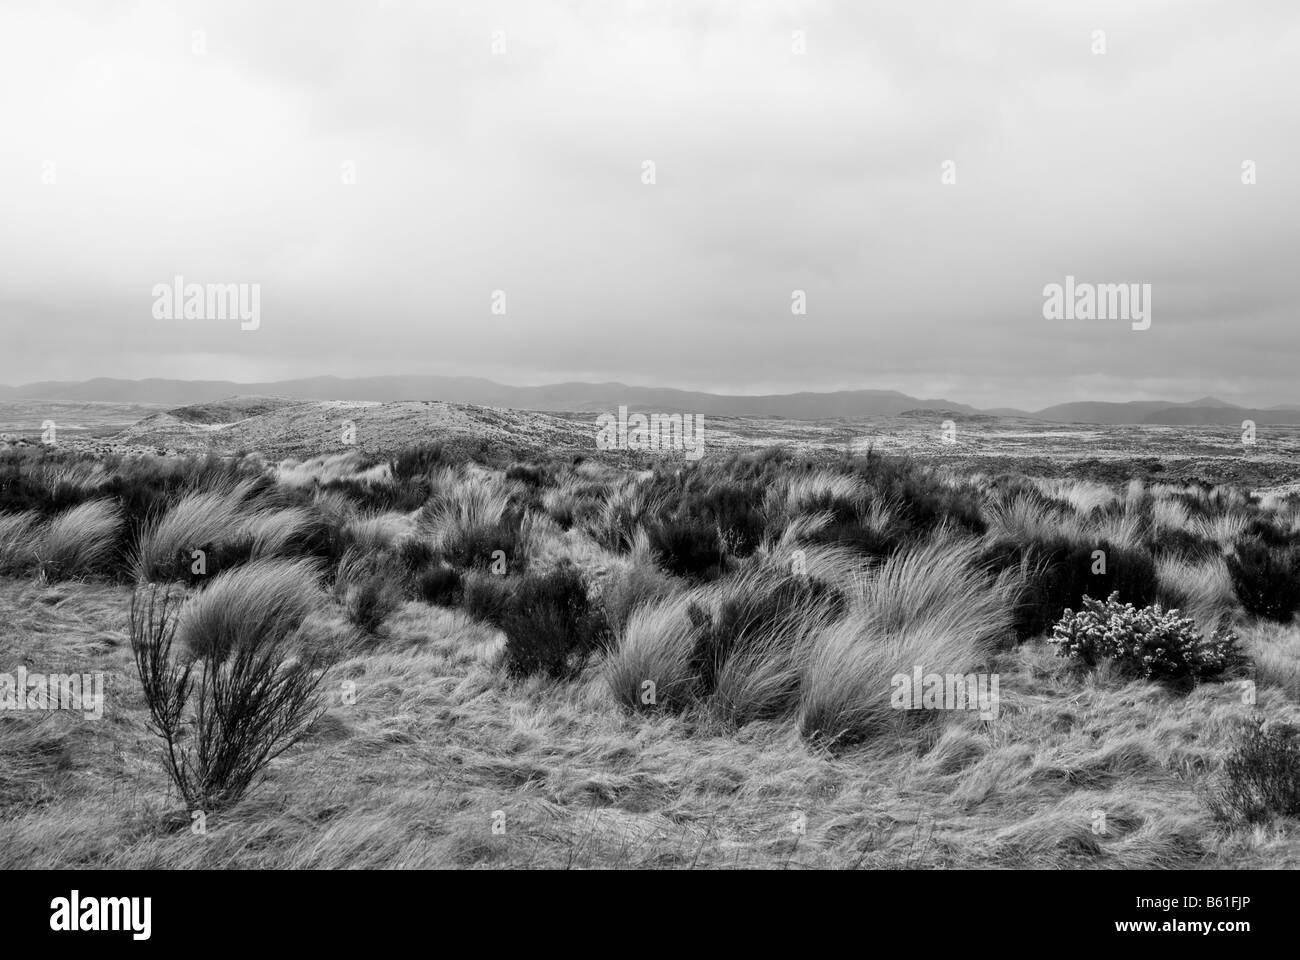 Rangipo Desert is a desert-like environment in New Zealand, located in the Ruapehu District on the North Island Stock Photo